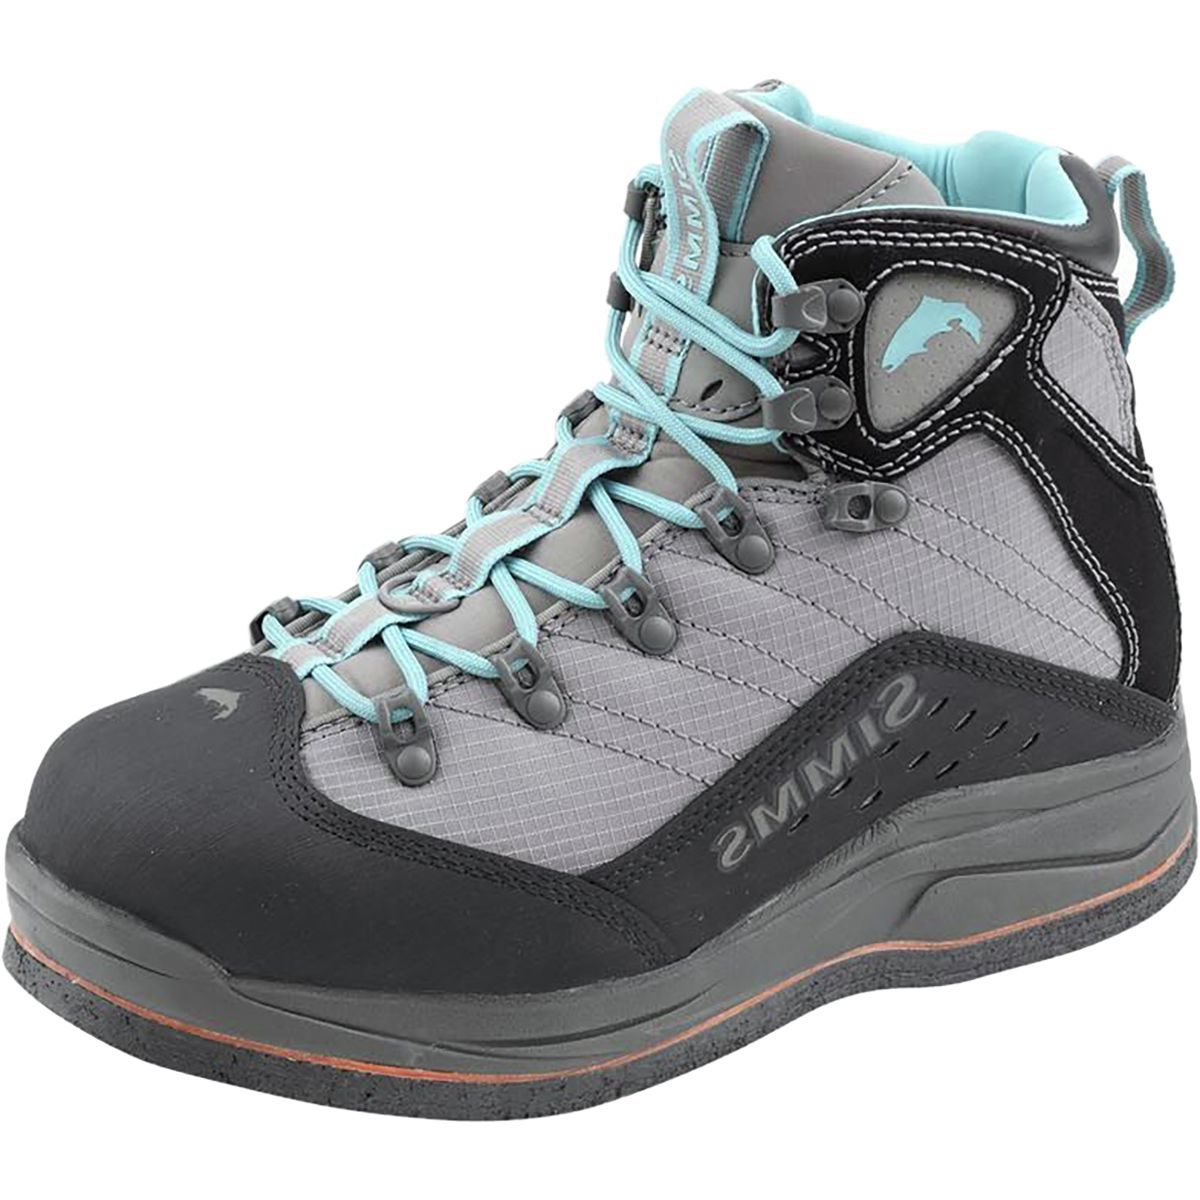 Simms VaporTread Boot - Felt - Women's